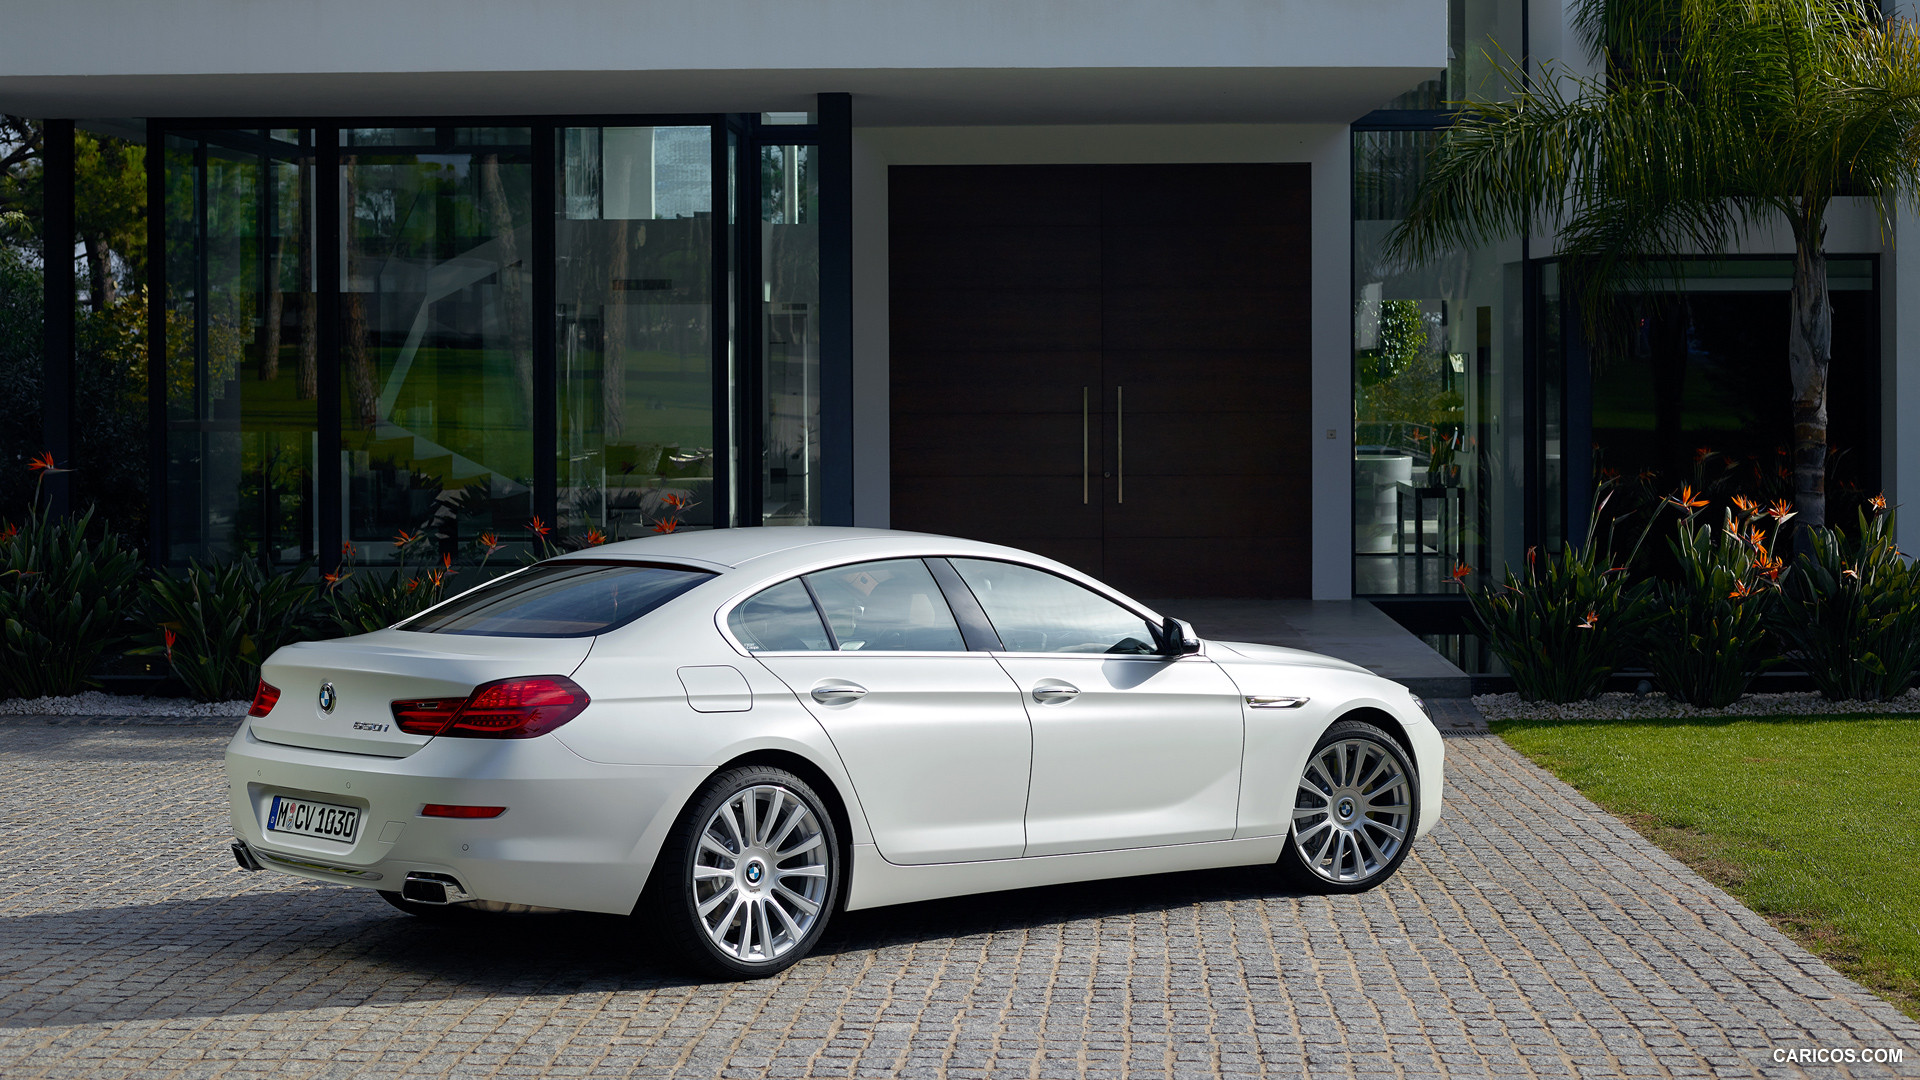 BMW-6_series_Gran_Coupe_mp2_pic_134327 Great Description About Bmw 650i 2015 with Fabulous Pictures Cars Review